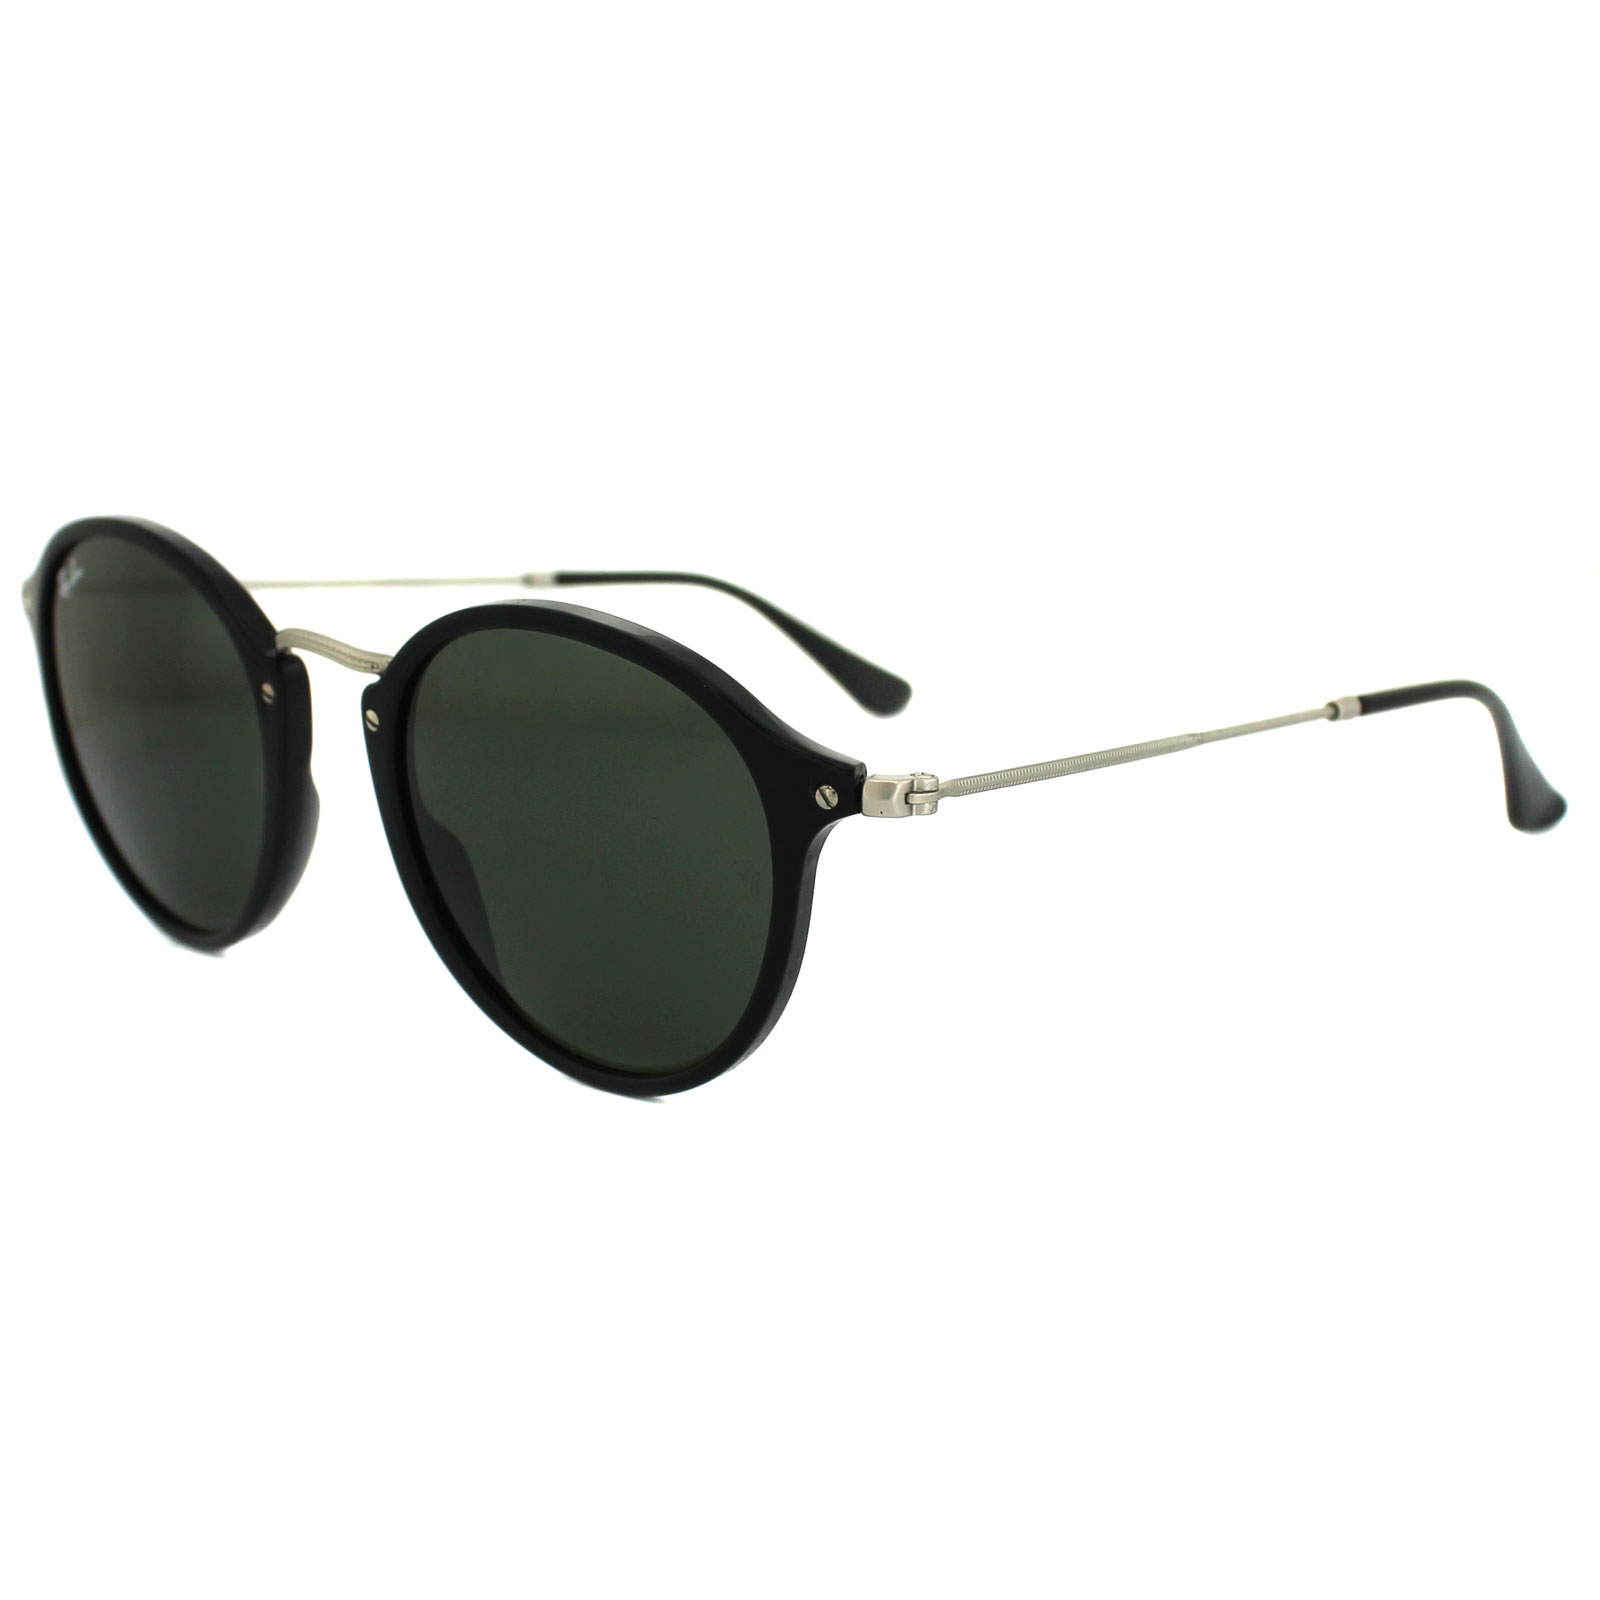 How to Choose Sunglasses for Your Face Shape How to Choose Sunglasses for Your Face Shape new picture